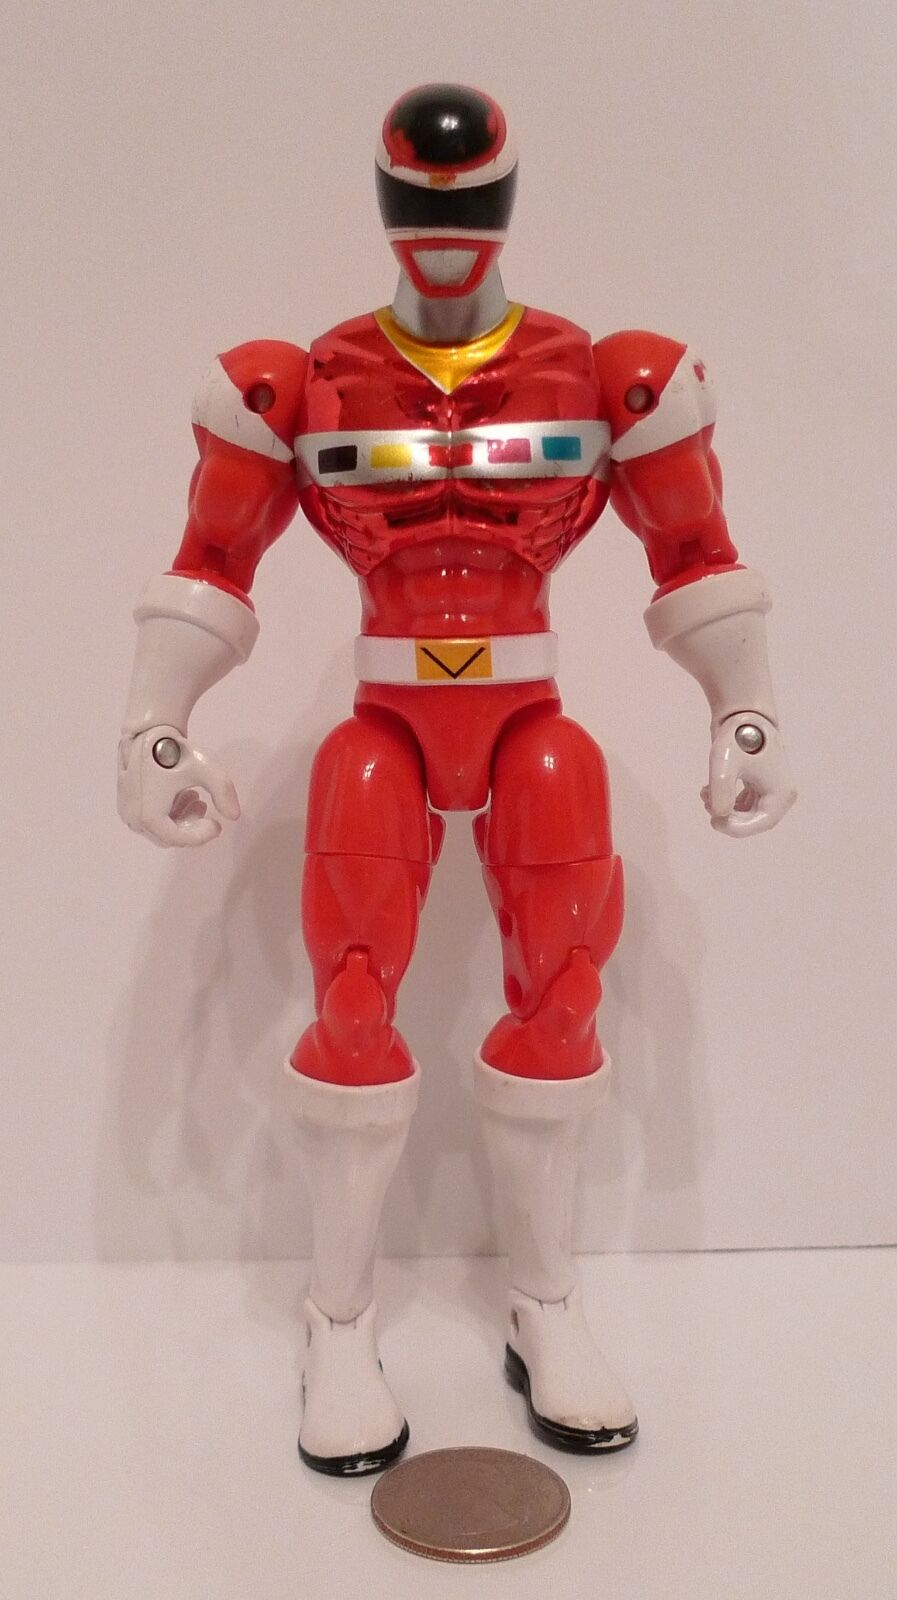 Power Rangers in Space Special Metallic Armor ROT Ranger 6.5